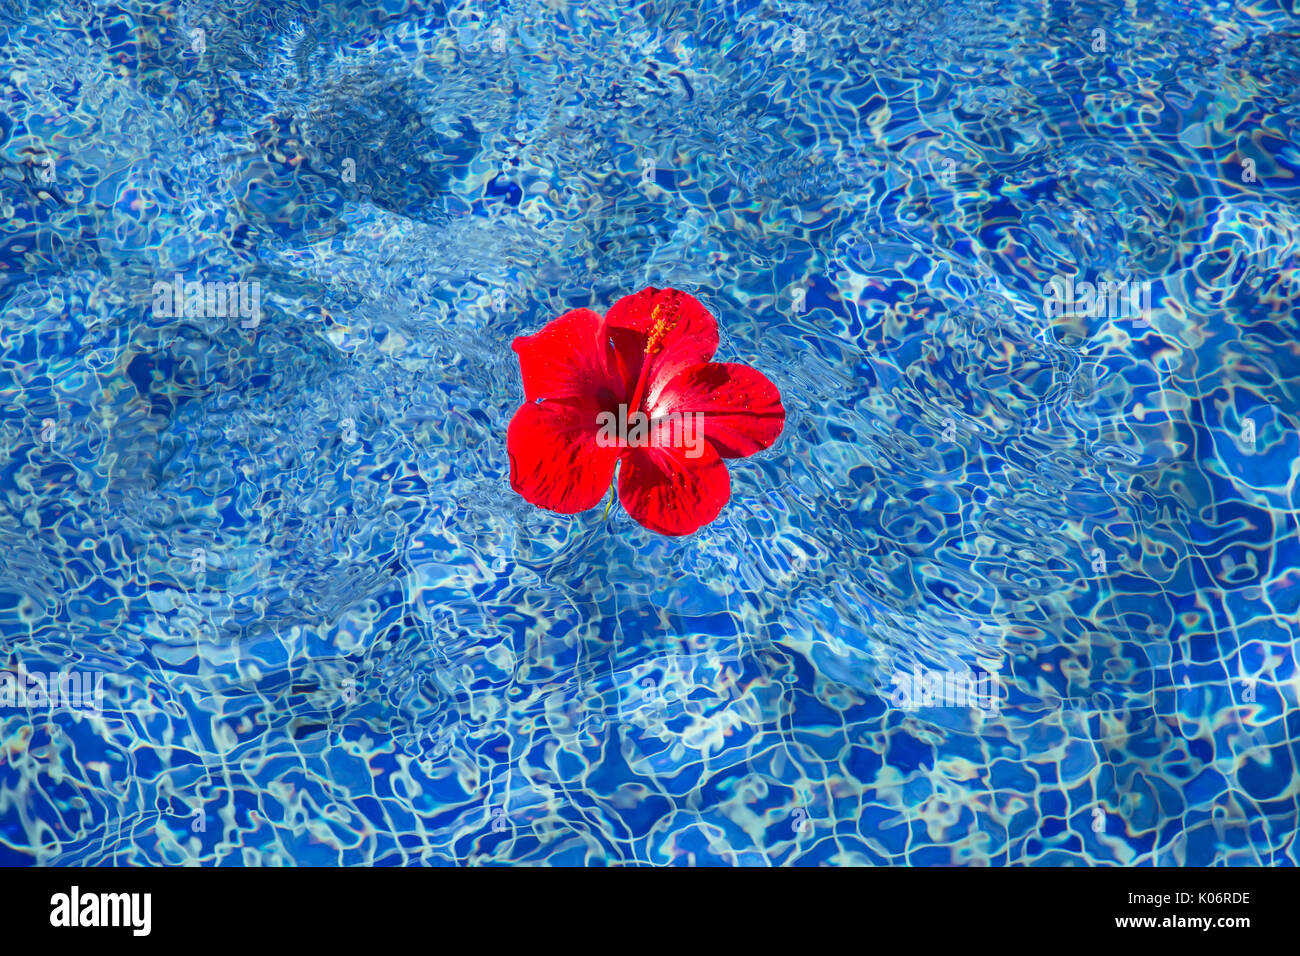 Tropical Hibiscus Flower Floating In Blue Water Stock Photo